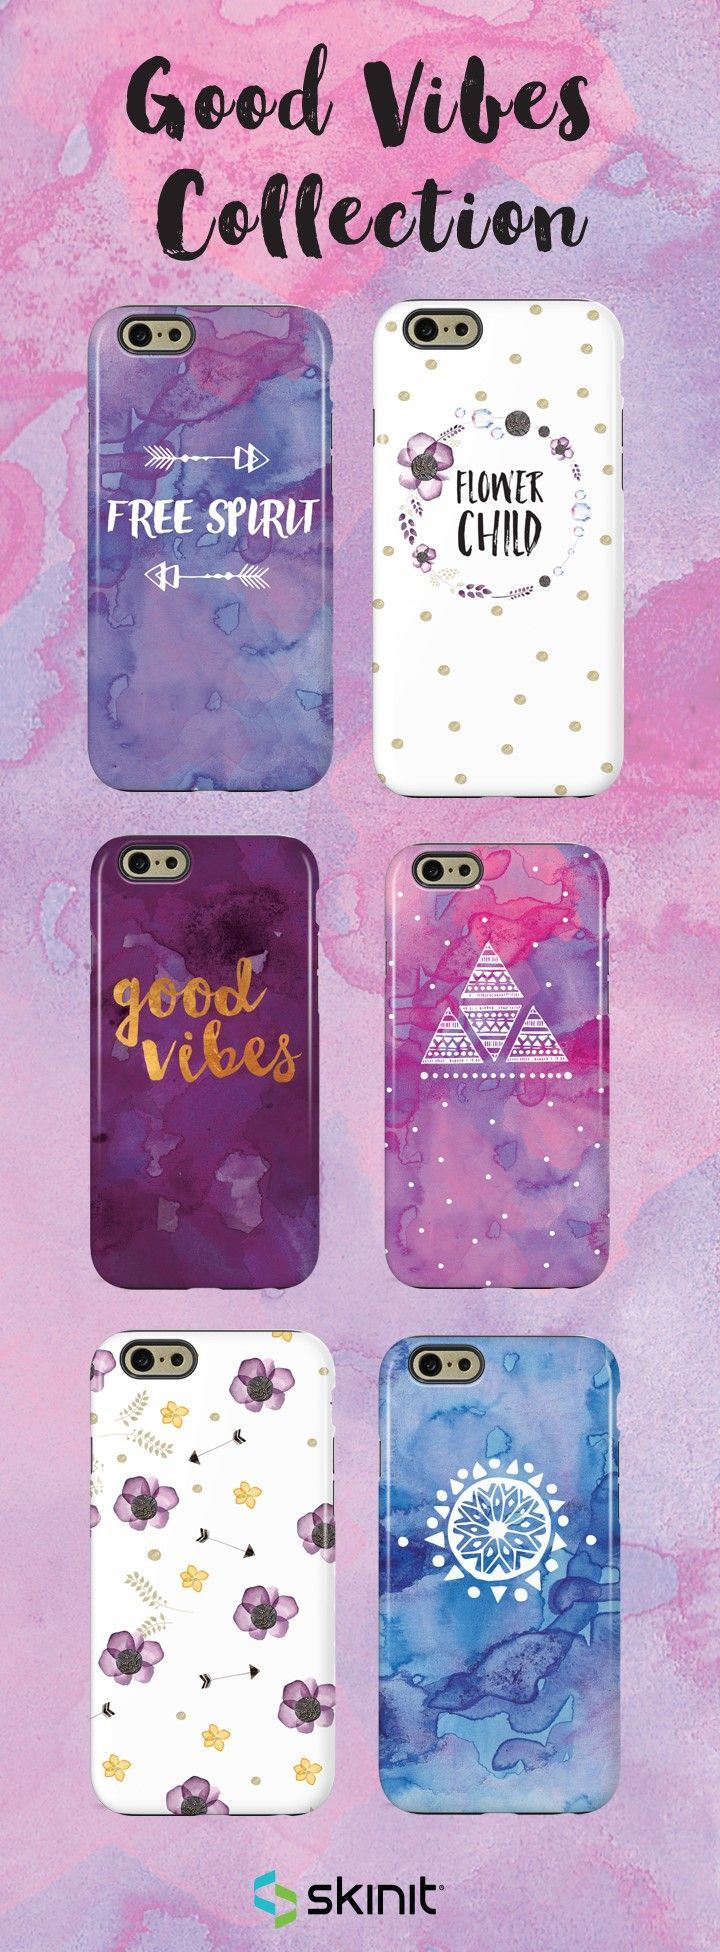 Good vibes only. Channel your inner bohemian spirit with our Good Vibes Collection. All designs are available as a case or skin for multiple devices. Select your device and shop the entire collection at www.skinit.com #SkinitMade